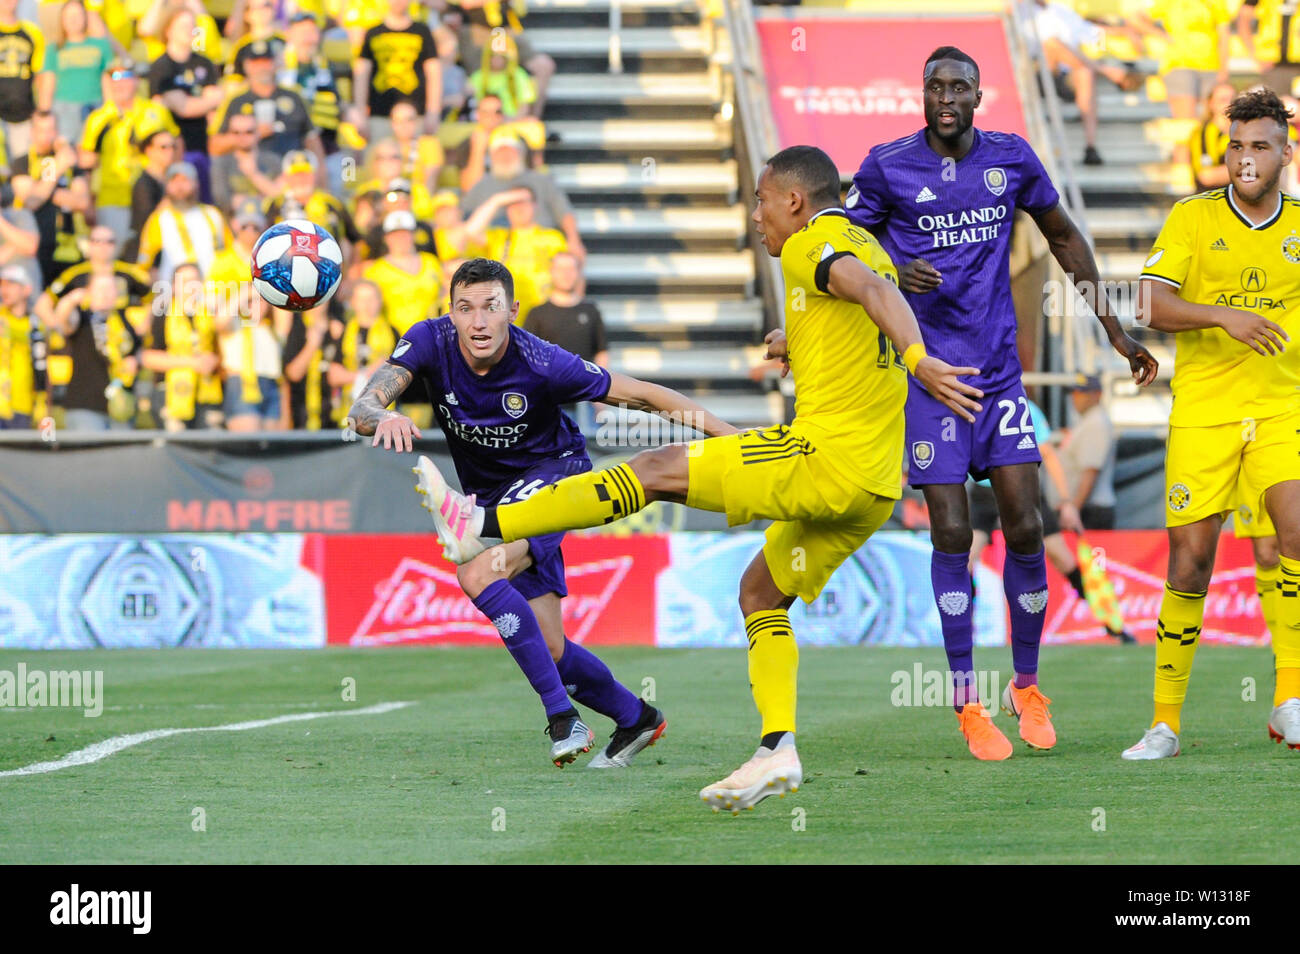 Saturday, June 29, 2019: Columbus Crew SC forward Robinho (18) attempts to connect on a cross with Orlando City defender Kyle Smith (24) looking on in the first half of the match between Orlando City and Columbus Crew SC at MAPFRE Stadium, in Columbus OH. Mandatory Photo Credit: Dorn Byg/Cal Sport Media. Orlando City 1 - Columbus Crew SC 0 after the first half - Stock Image